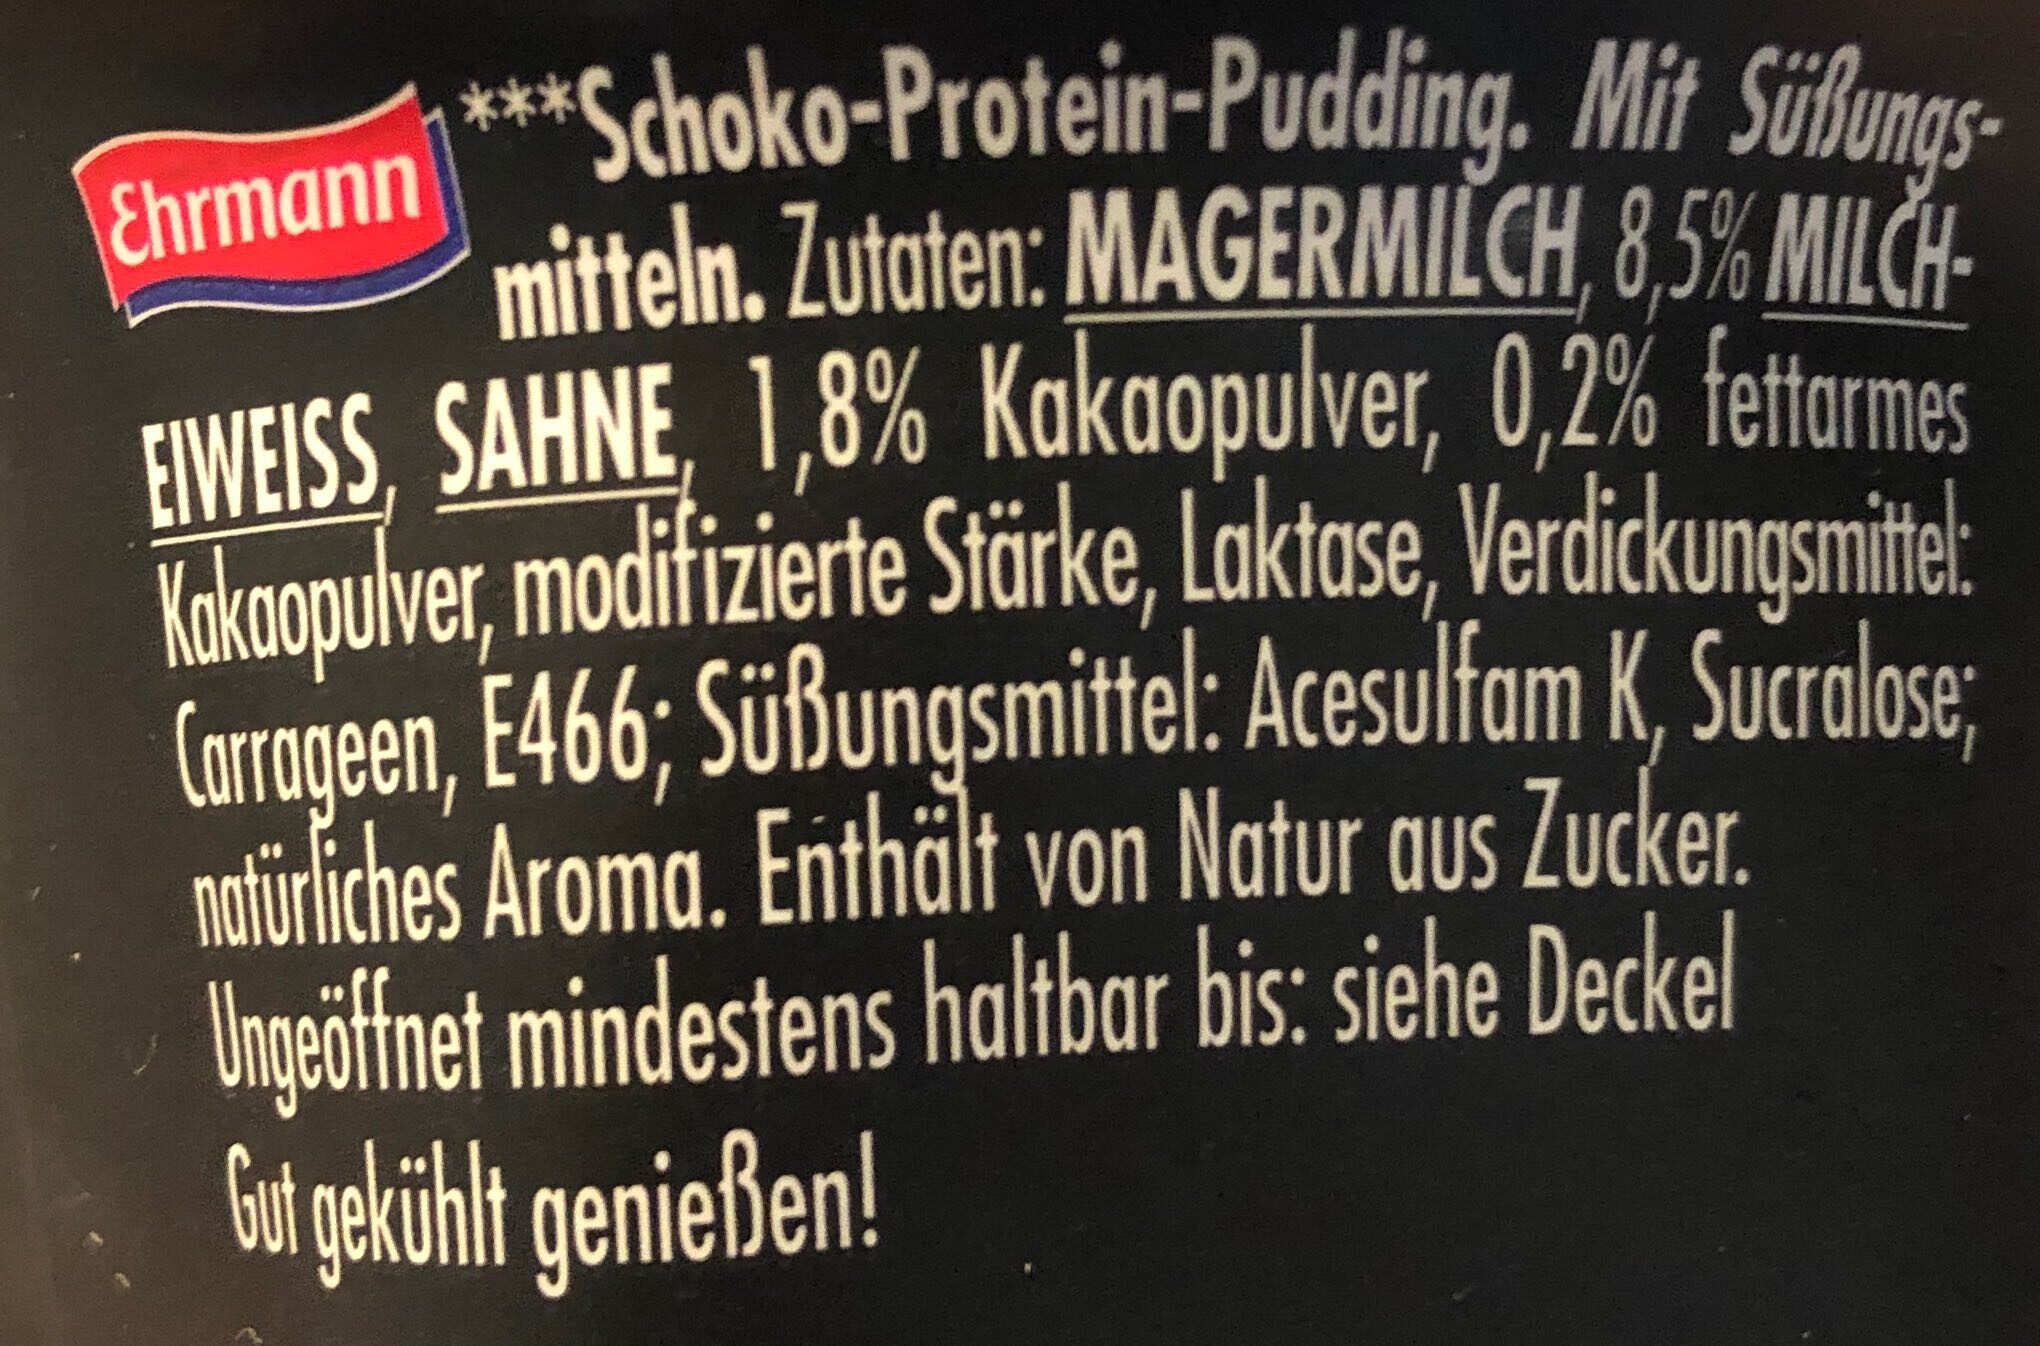 High Protein Chocolate pudding - Ingredients - en